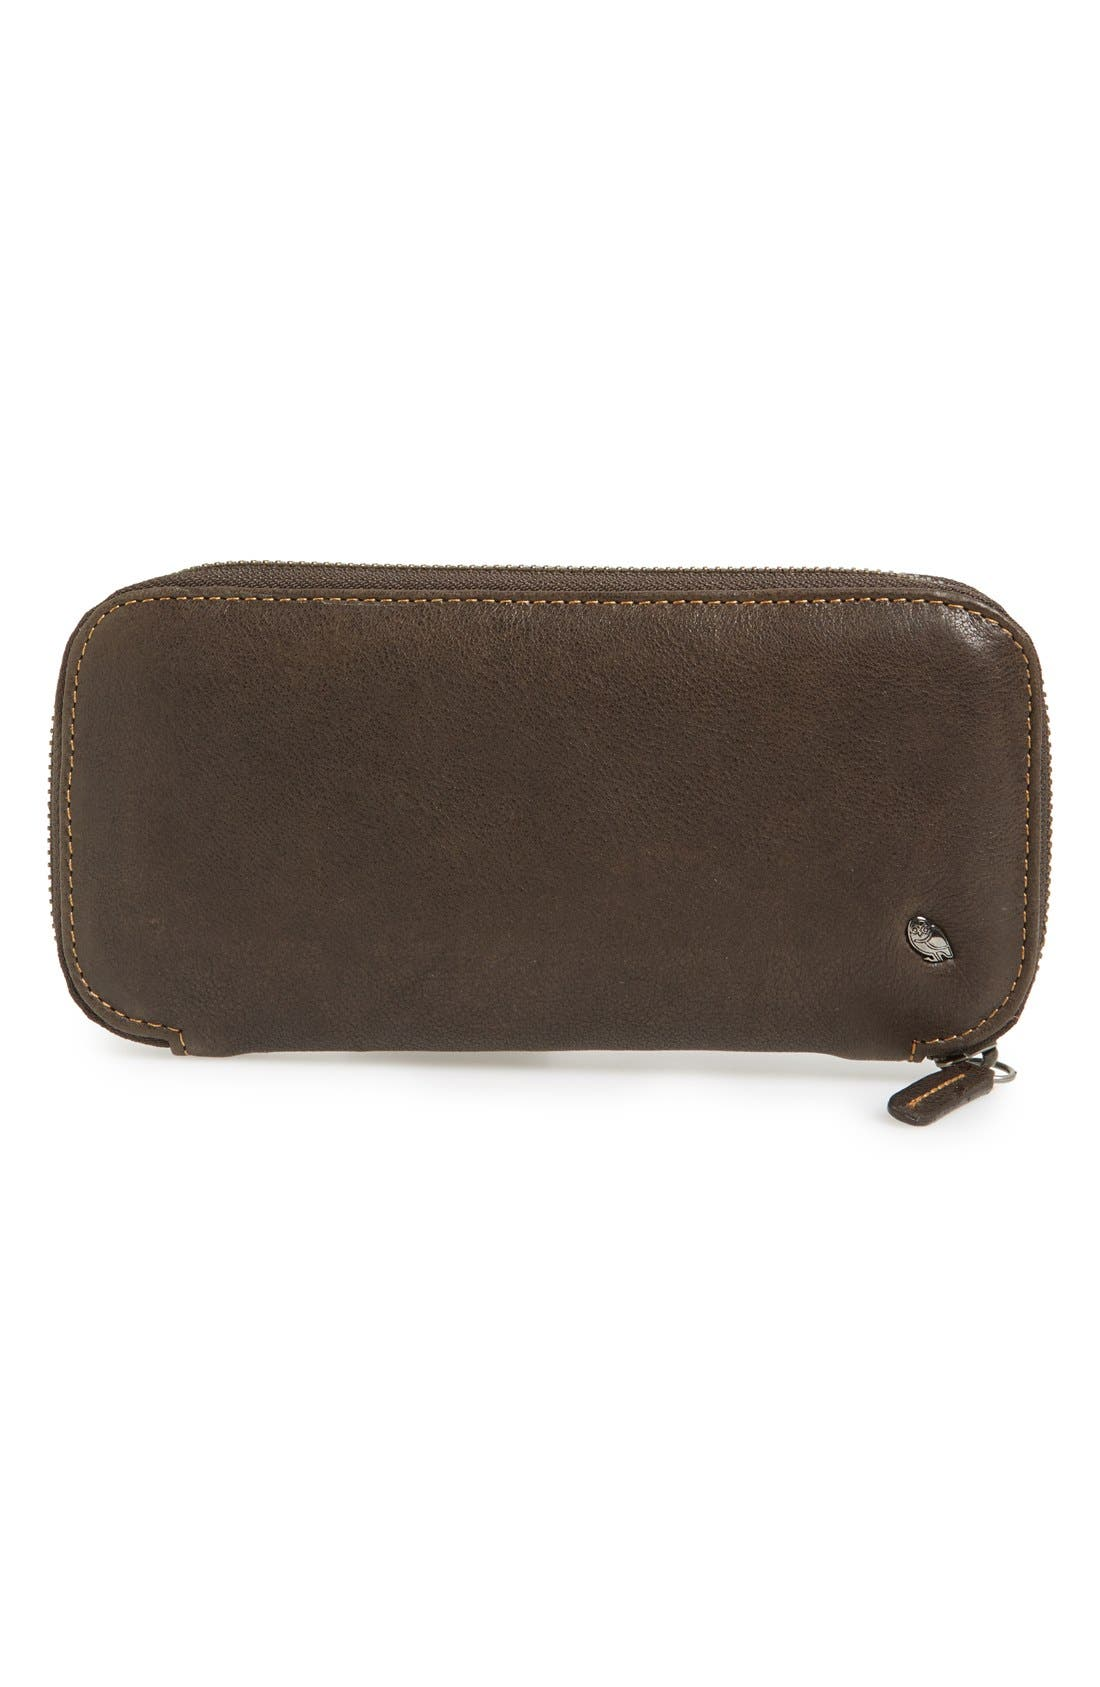 'Take Out' Zip Wallet, Main, color, 240